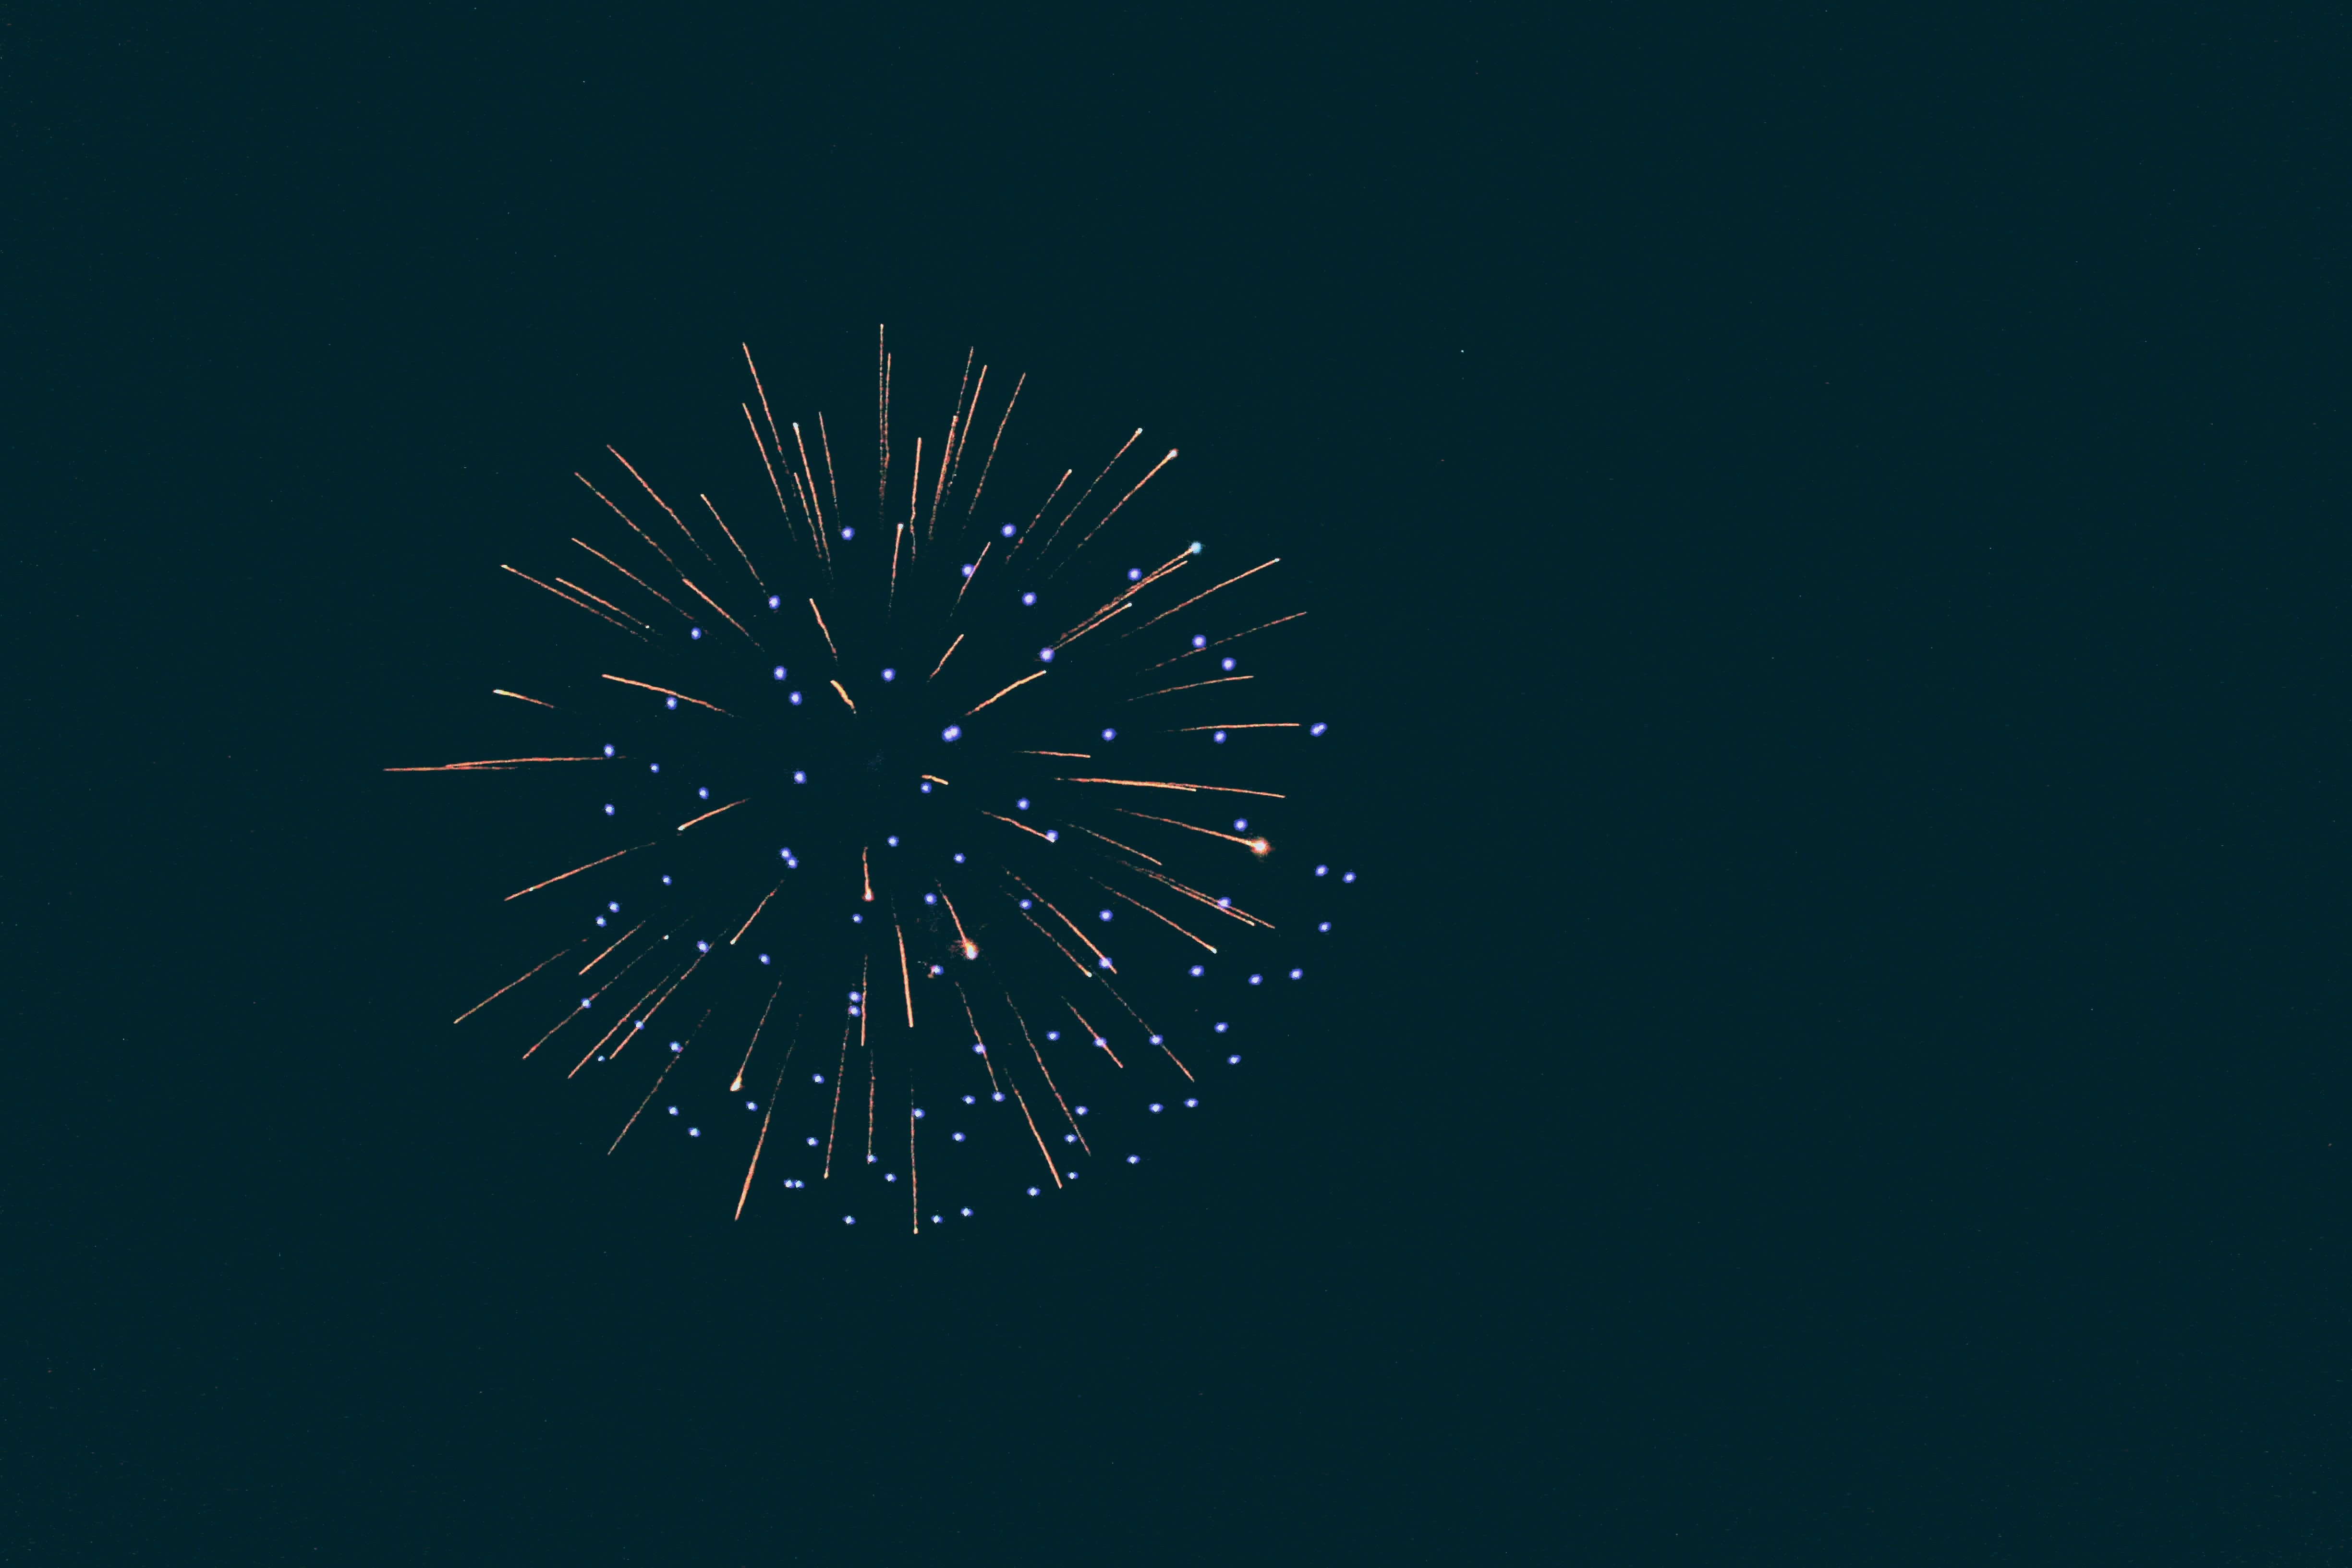 143650 download wallpaper Holidays, Salute, Fireworks, Firework, Sparks, Glow, Night screensavers and pictures for free